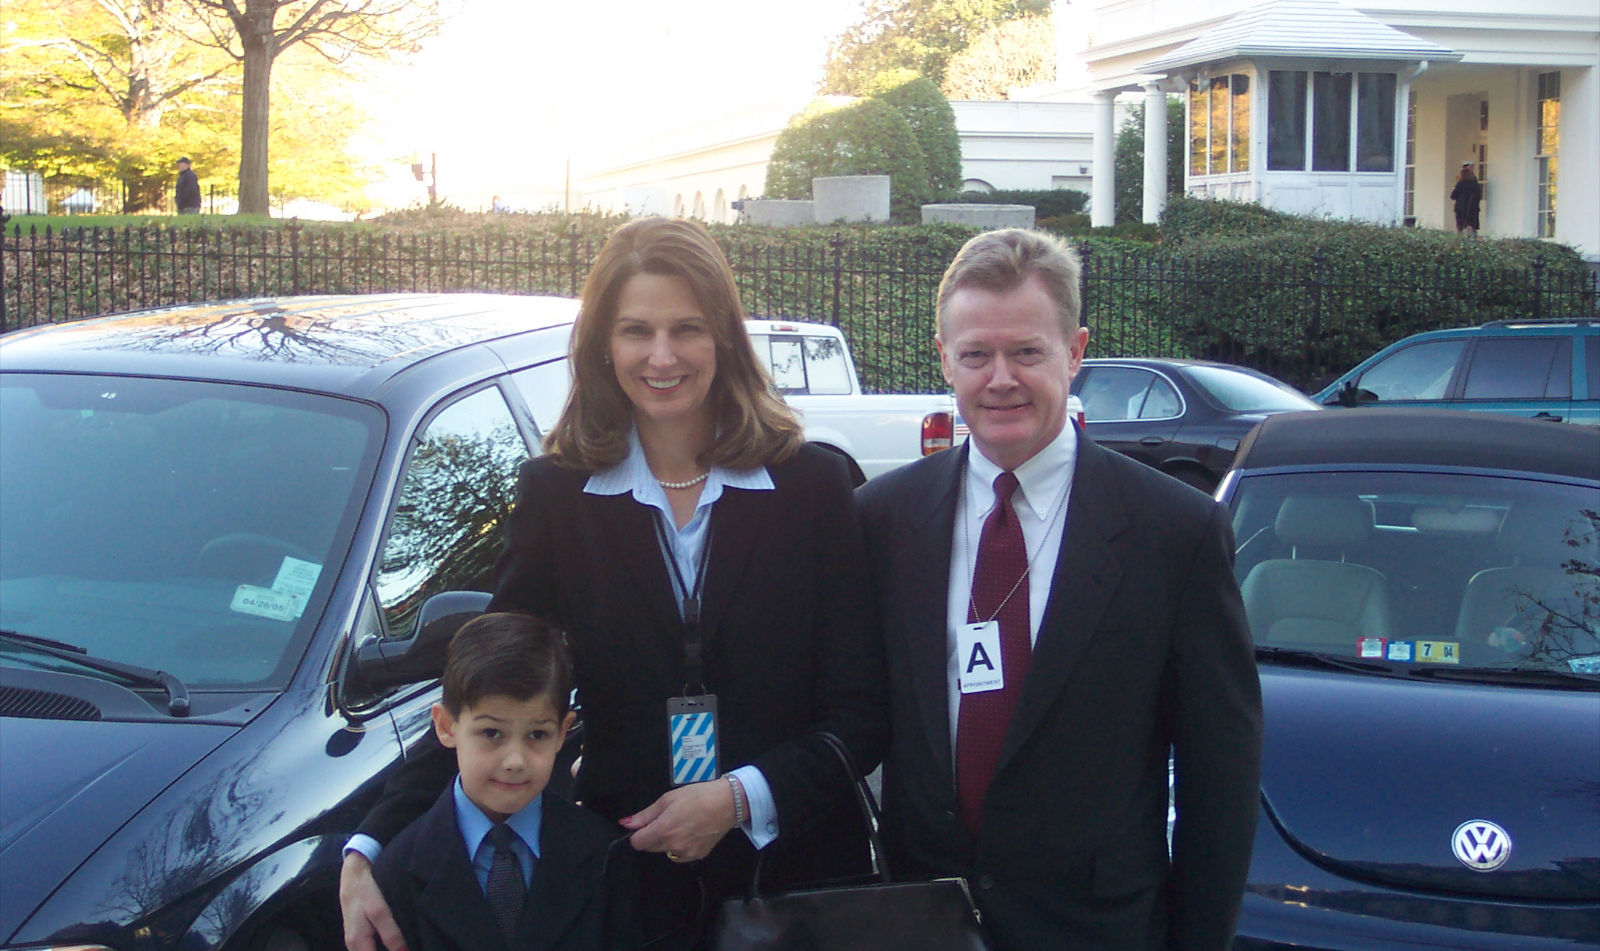 Dan Emmett, wife and son outside of White House